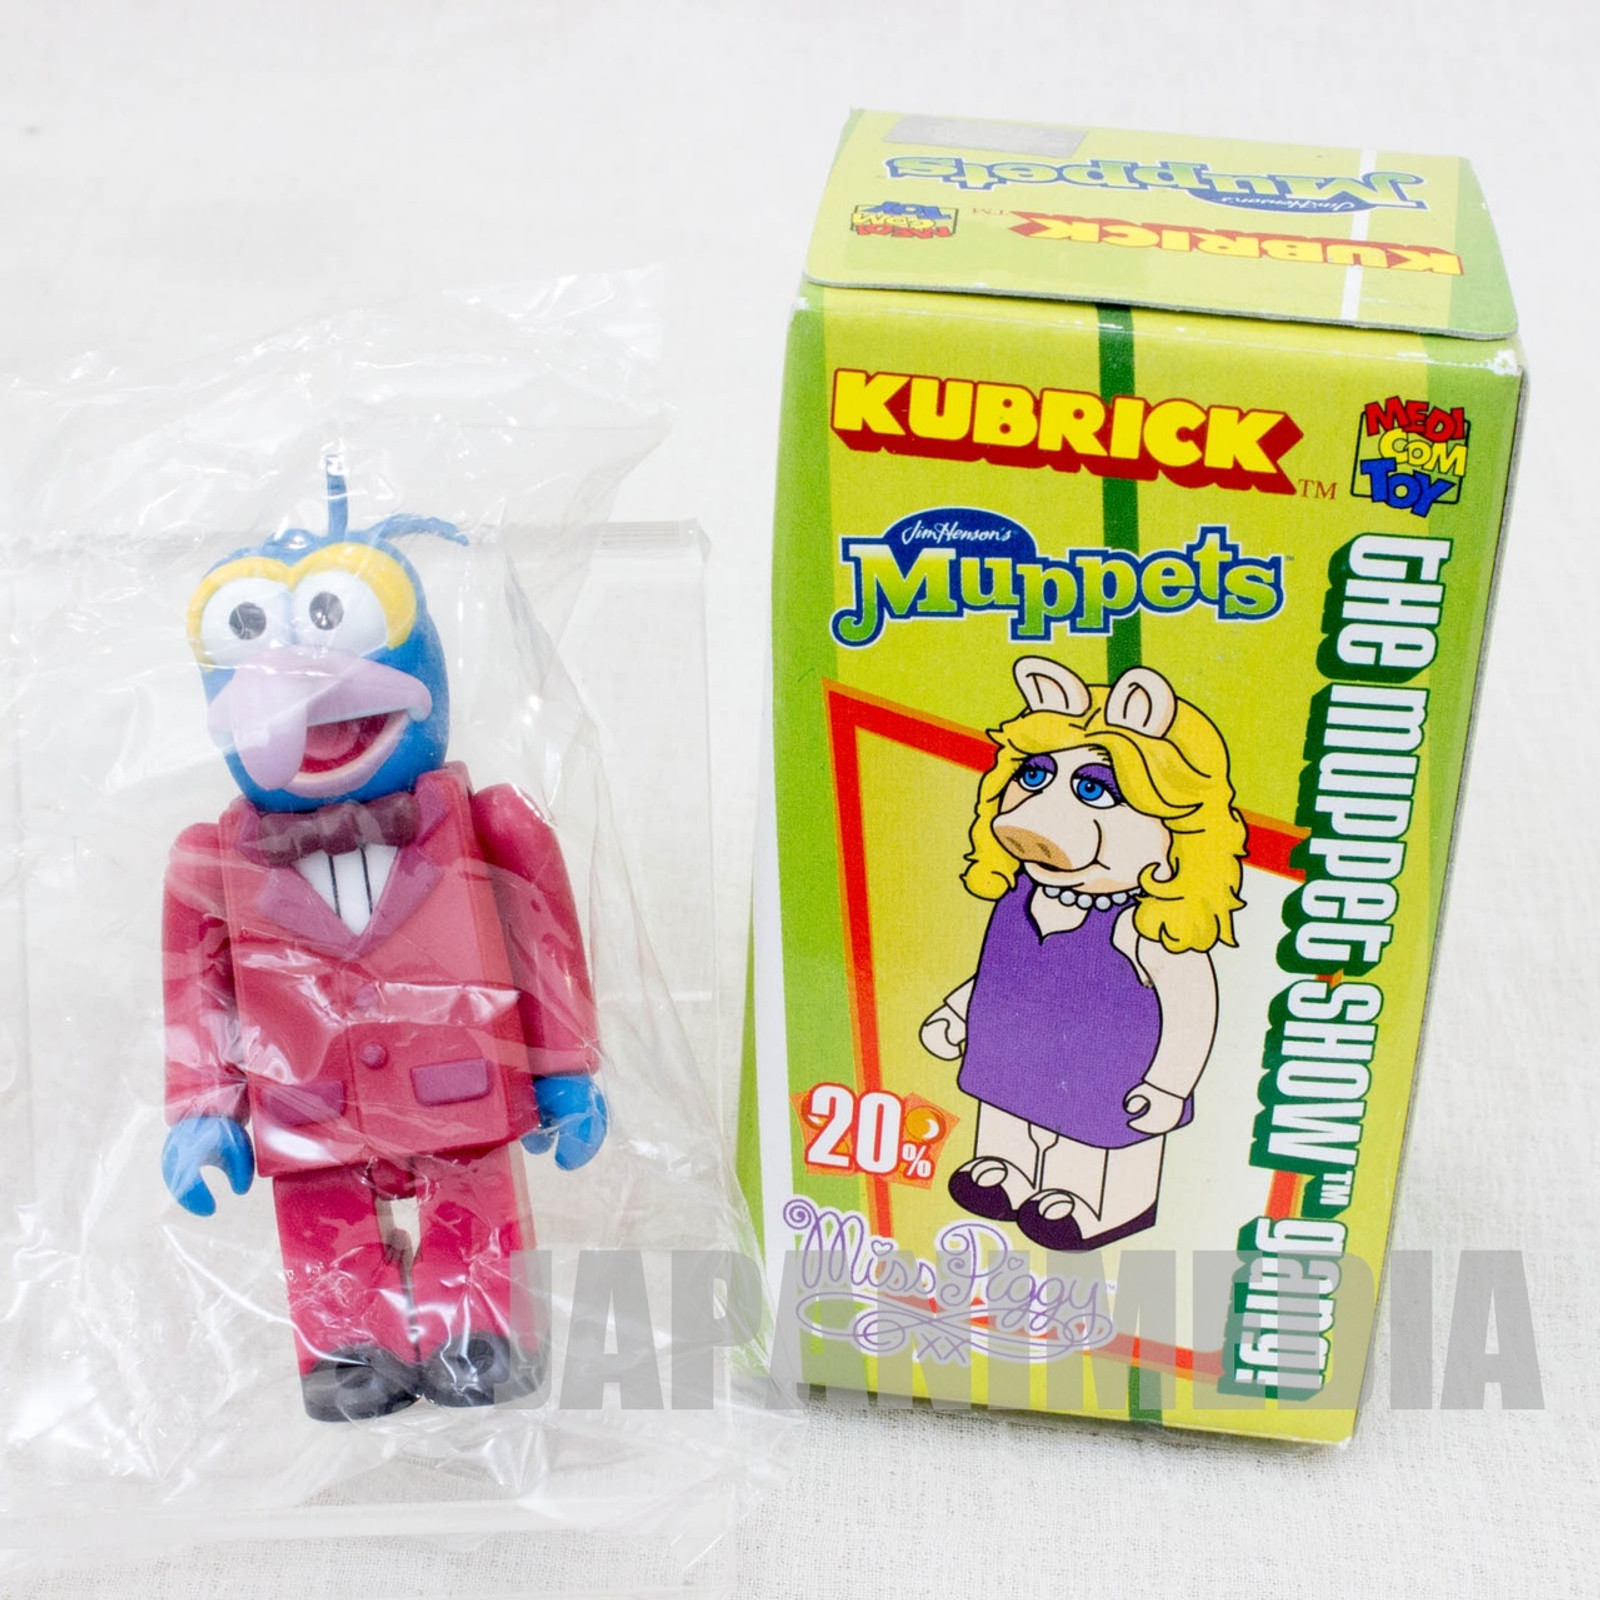 MUPPETS The Great Gonzs Kubrick Medicom Toy JAPAN FIGURE